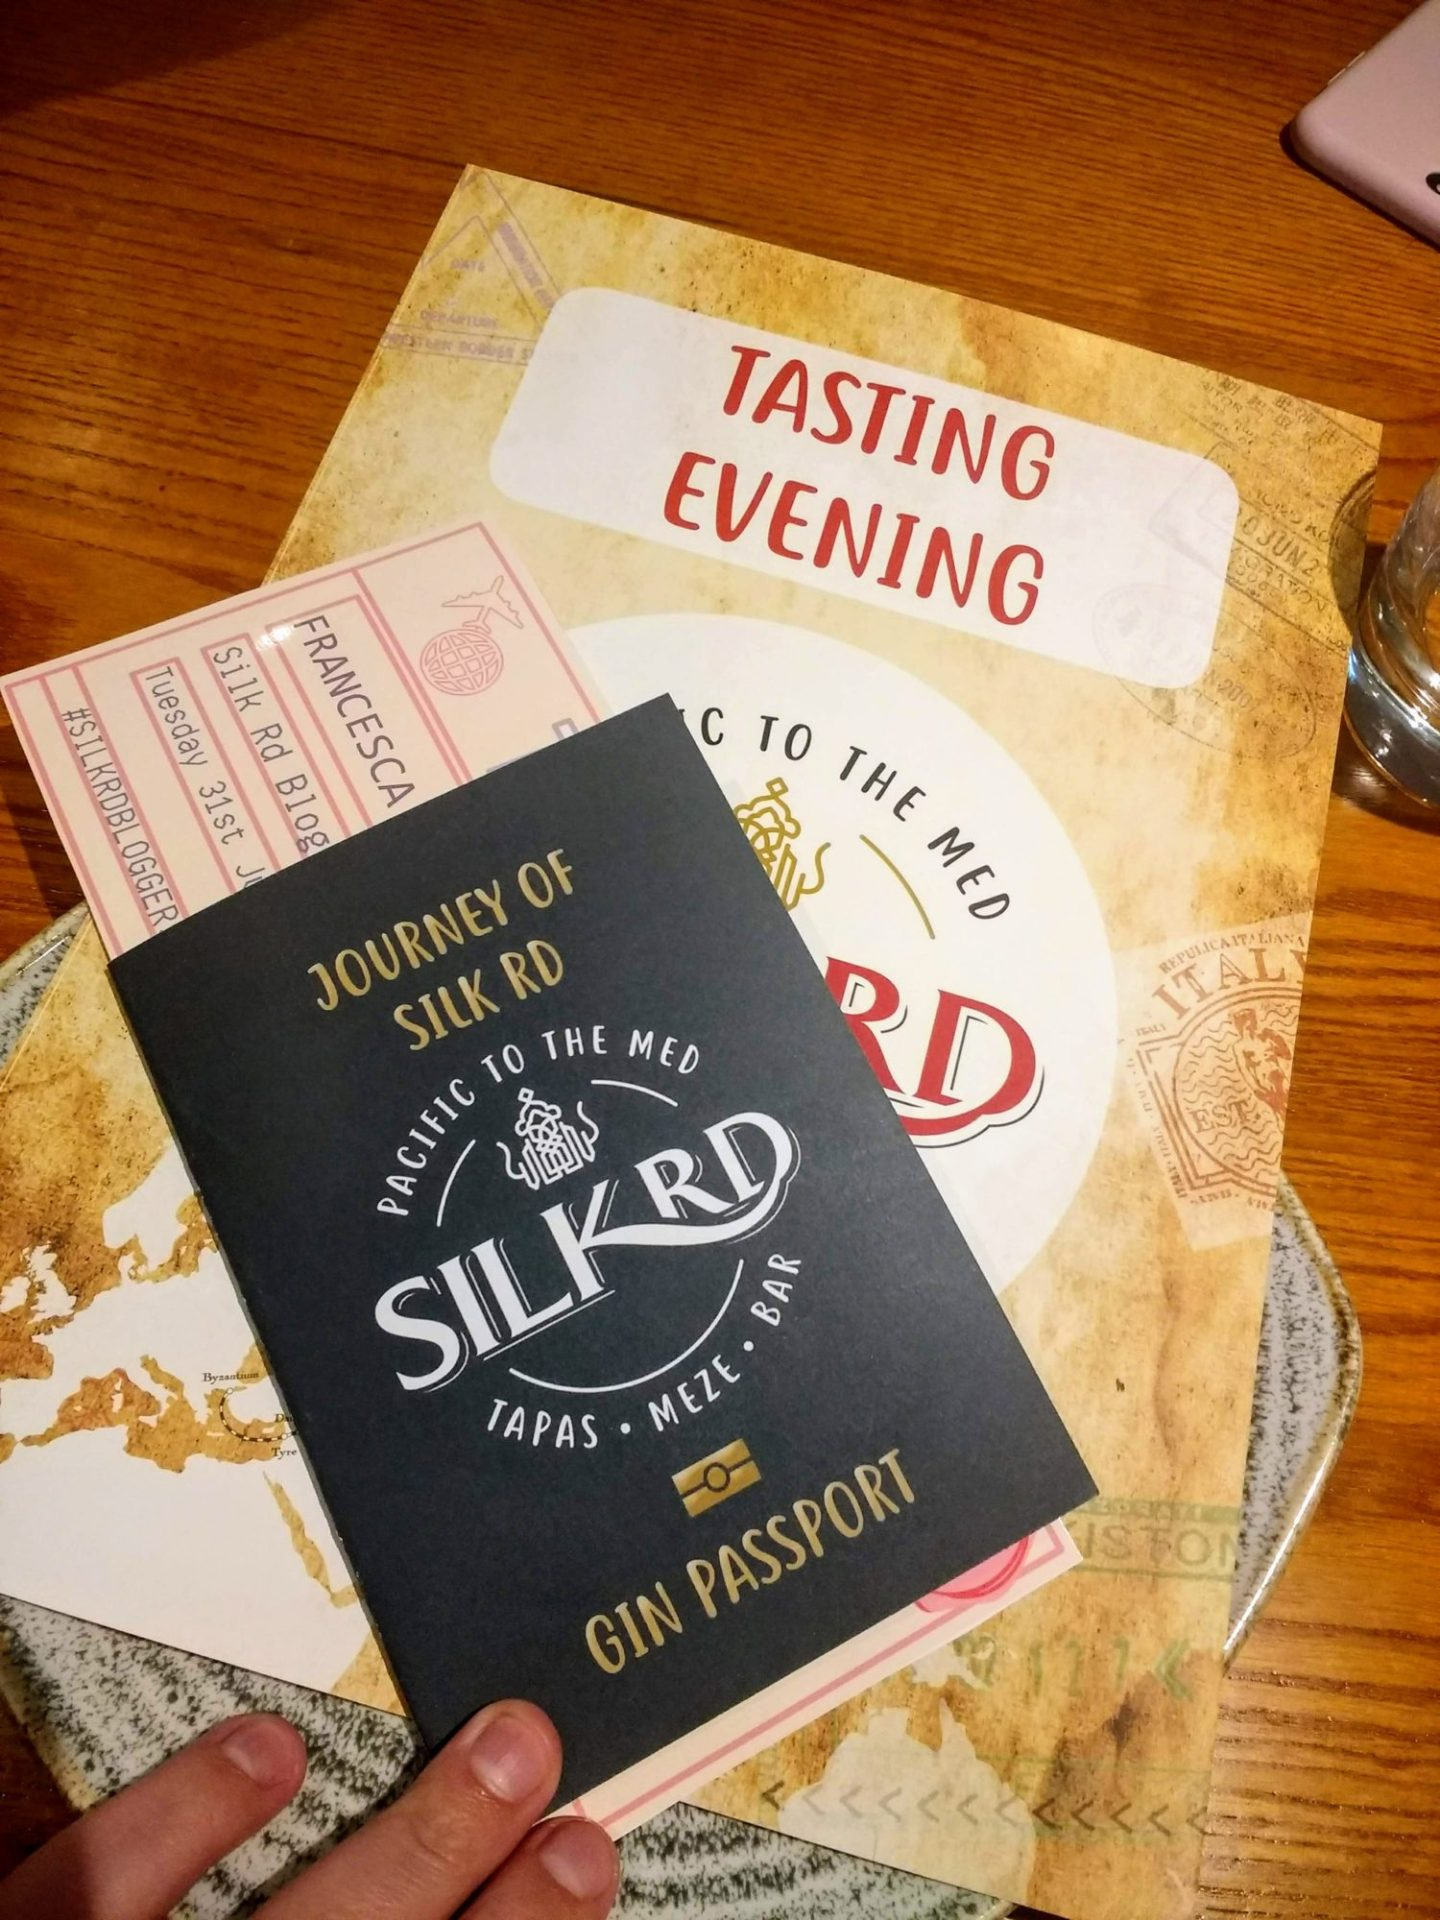 Exploring Gluten Free Tapas at Silk Rd*